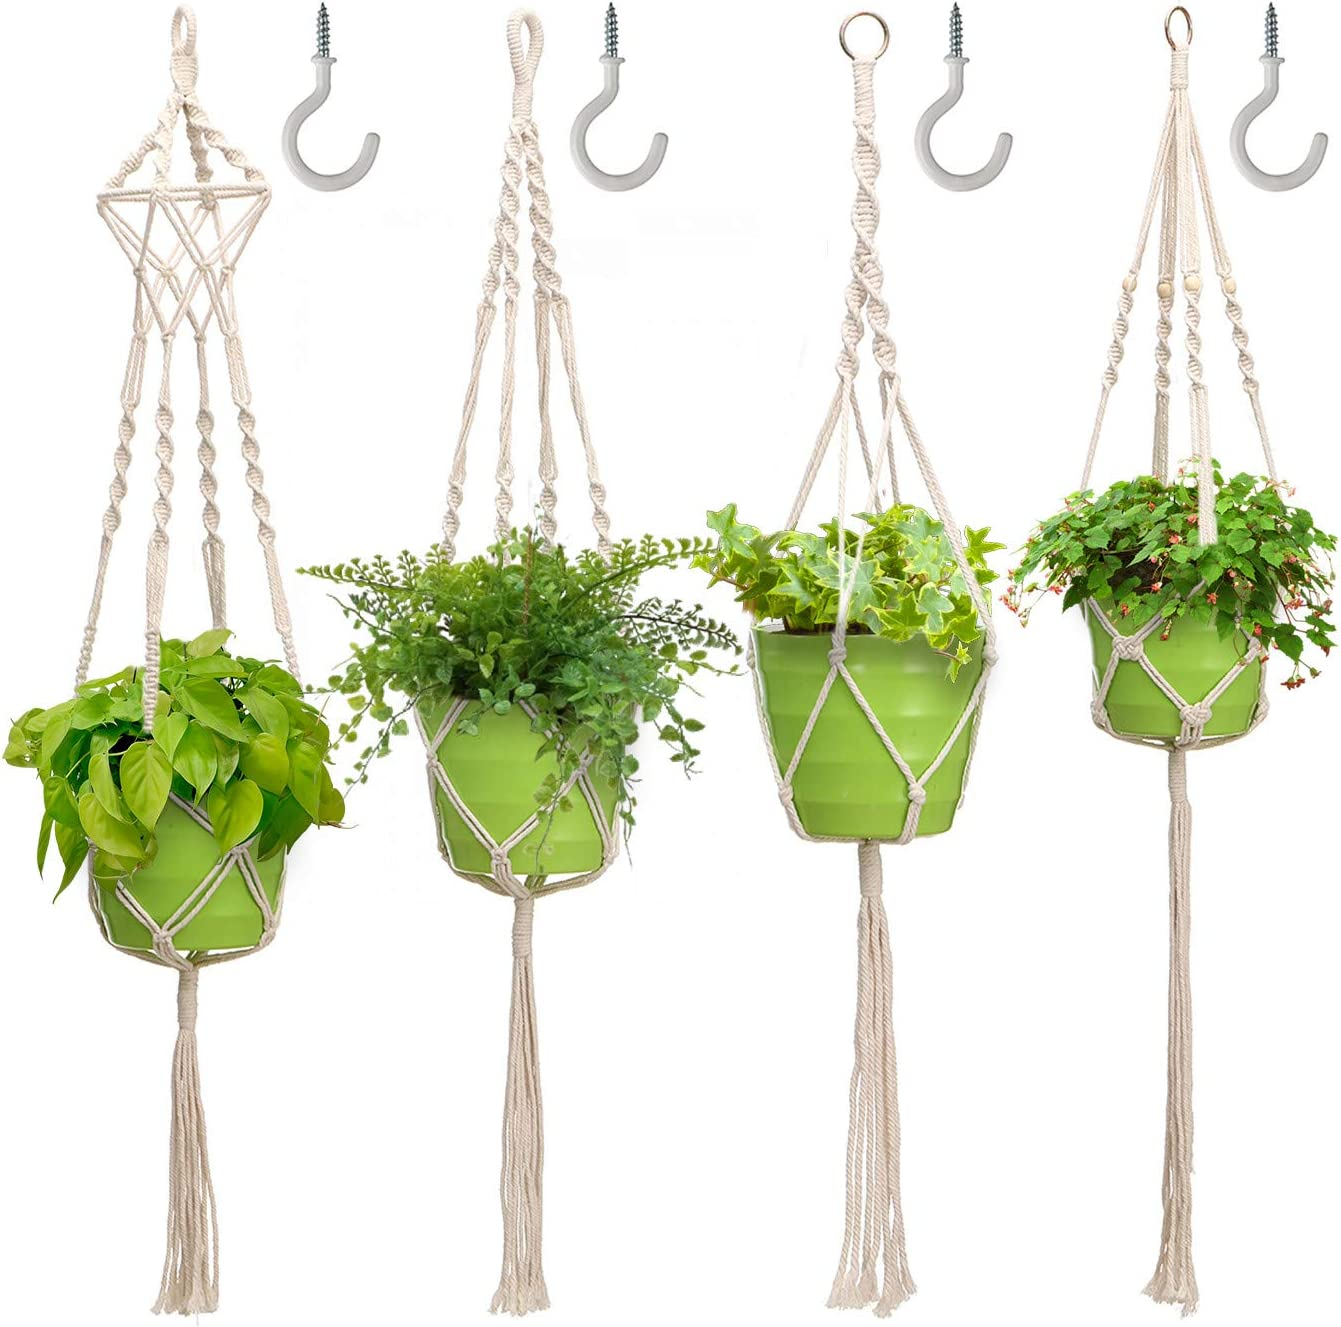 Tvird Macrame Plant Hangers,4 Pack Indoor Hanging Planter with 4 Hooks,41 Inch Handmade Cotton Hanging Plant Holder with 4 Legs for Home,Garden,Office Decor (Rice White)